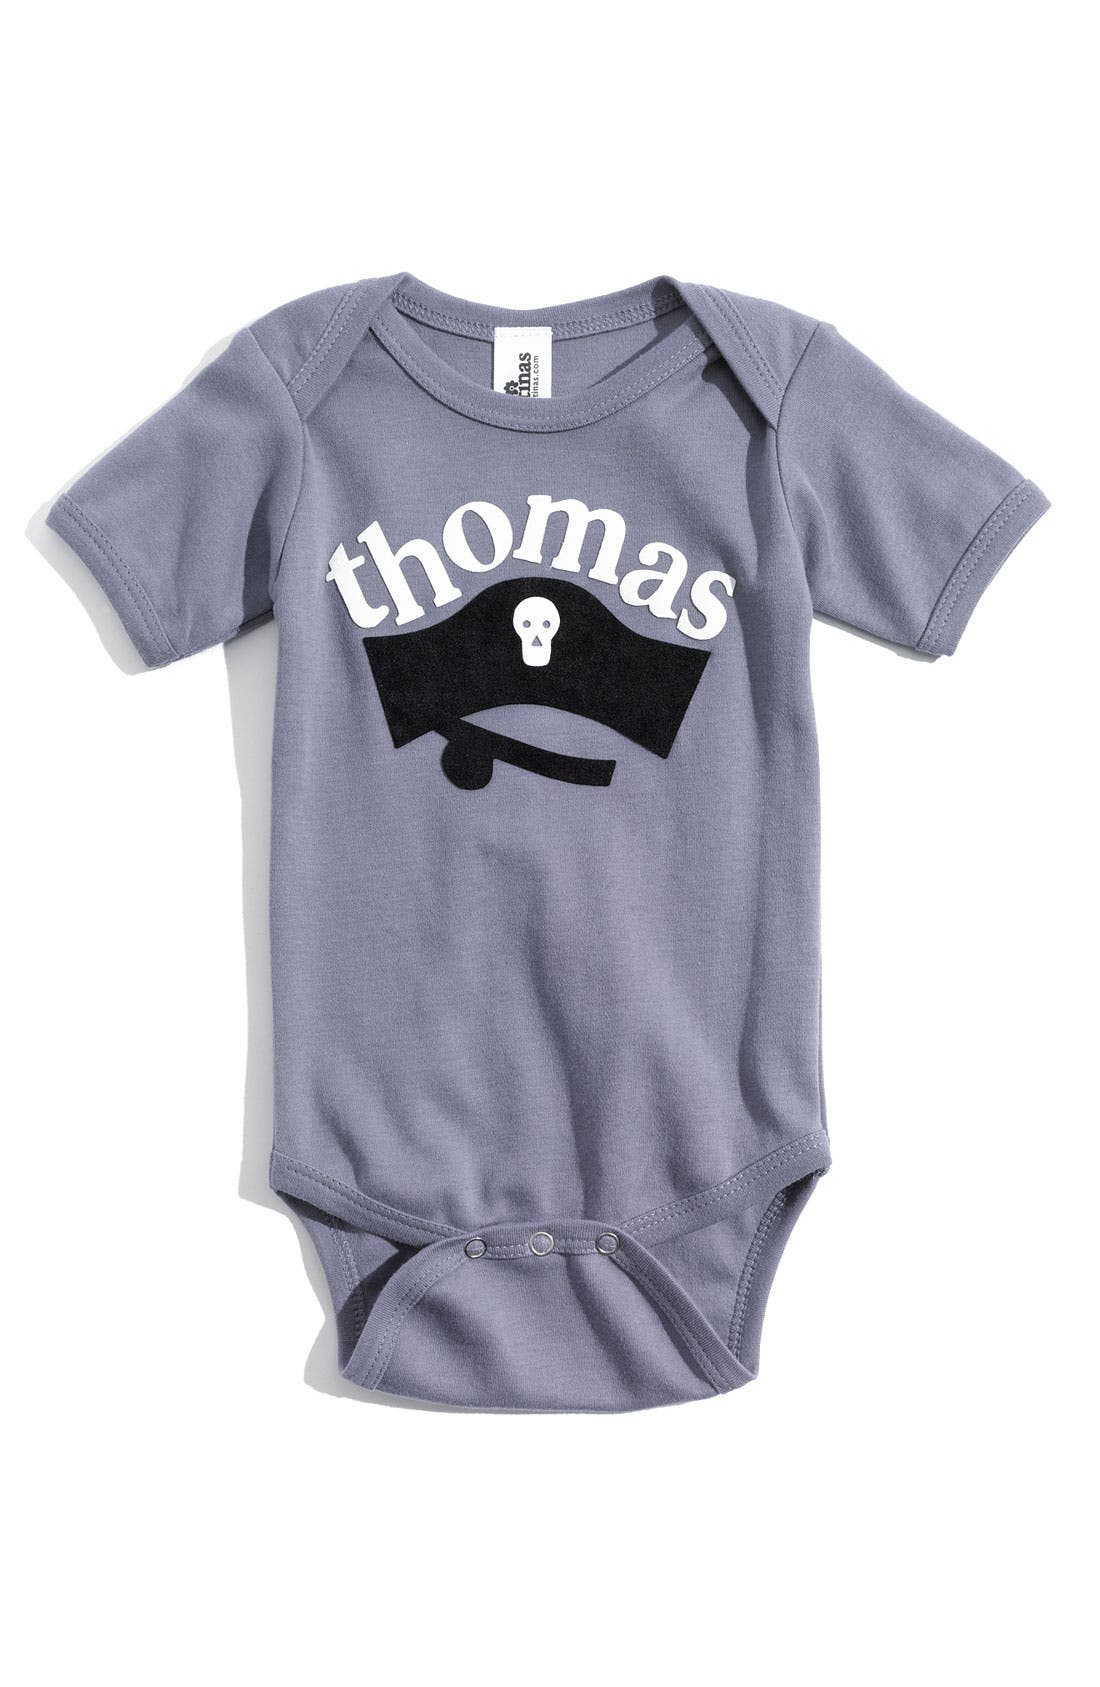 Alternate Image 1 Selected - Two Tinas Personalized Bodysuit (Baby)